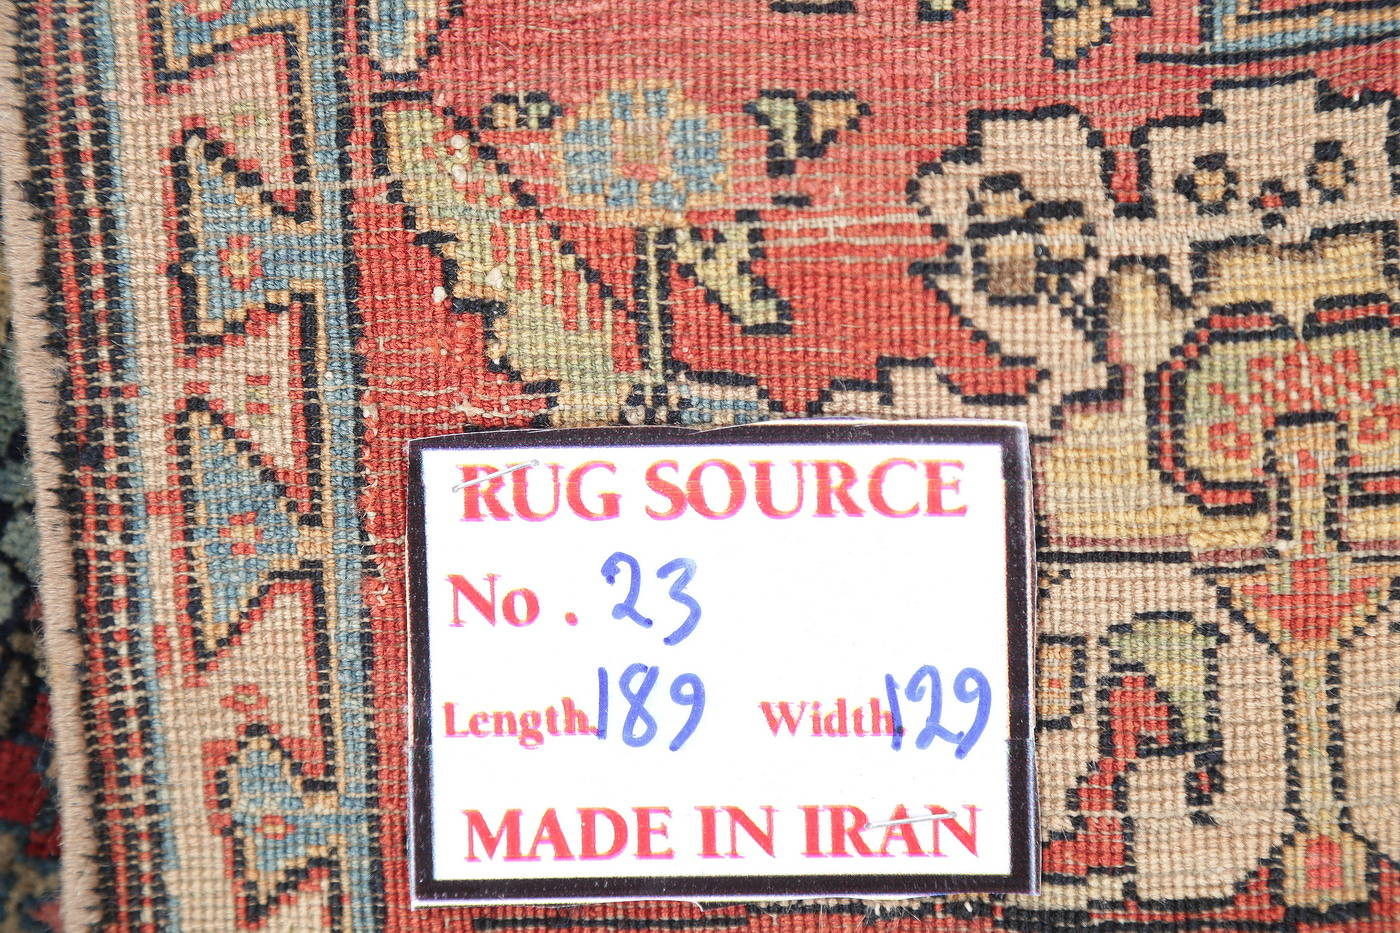 Antique Green Pictorial Kashan Mohtasham Persian Area Rug 4x6 image 24